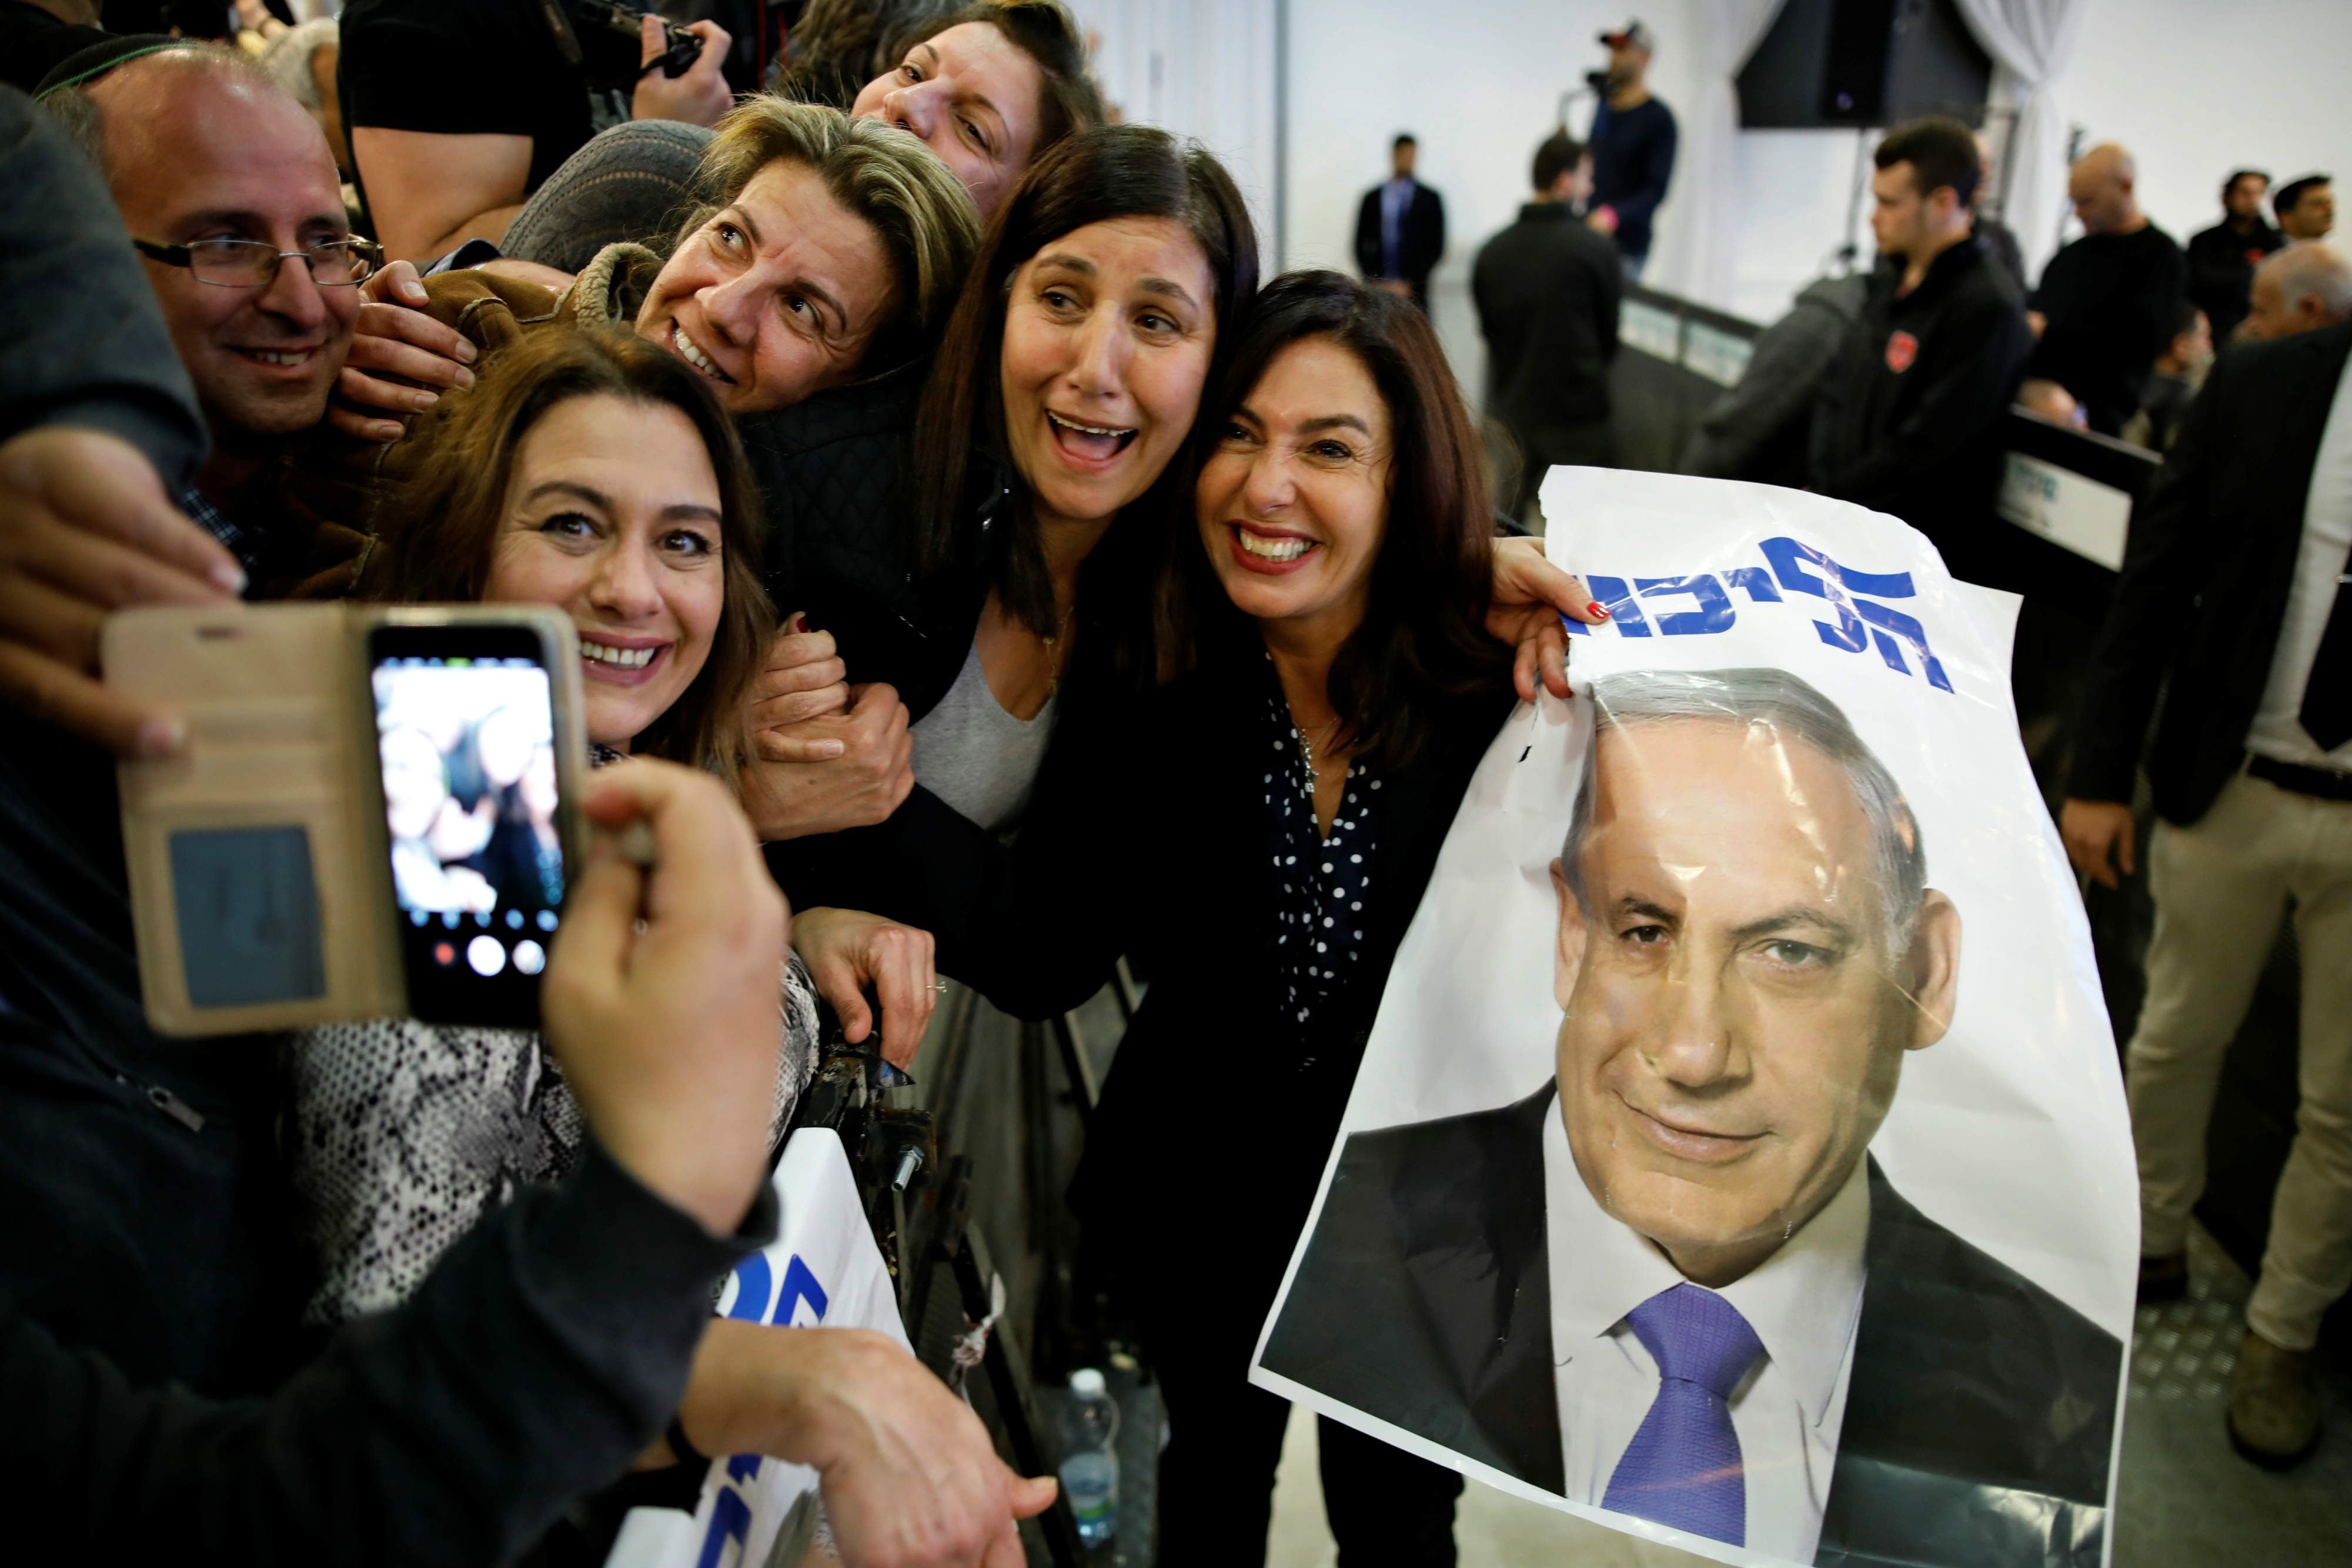 Israel's Minister of Culture and Sport Miri Regev and supporters of the Likud Party hold a photo of Israeli Prime Minister Benjamin Netanyahu at the launch of Likud party's election campaign (Reuters)